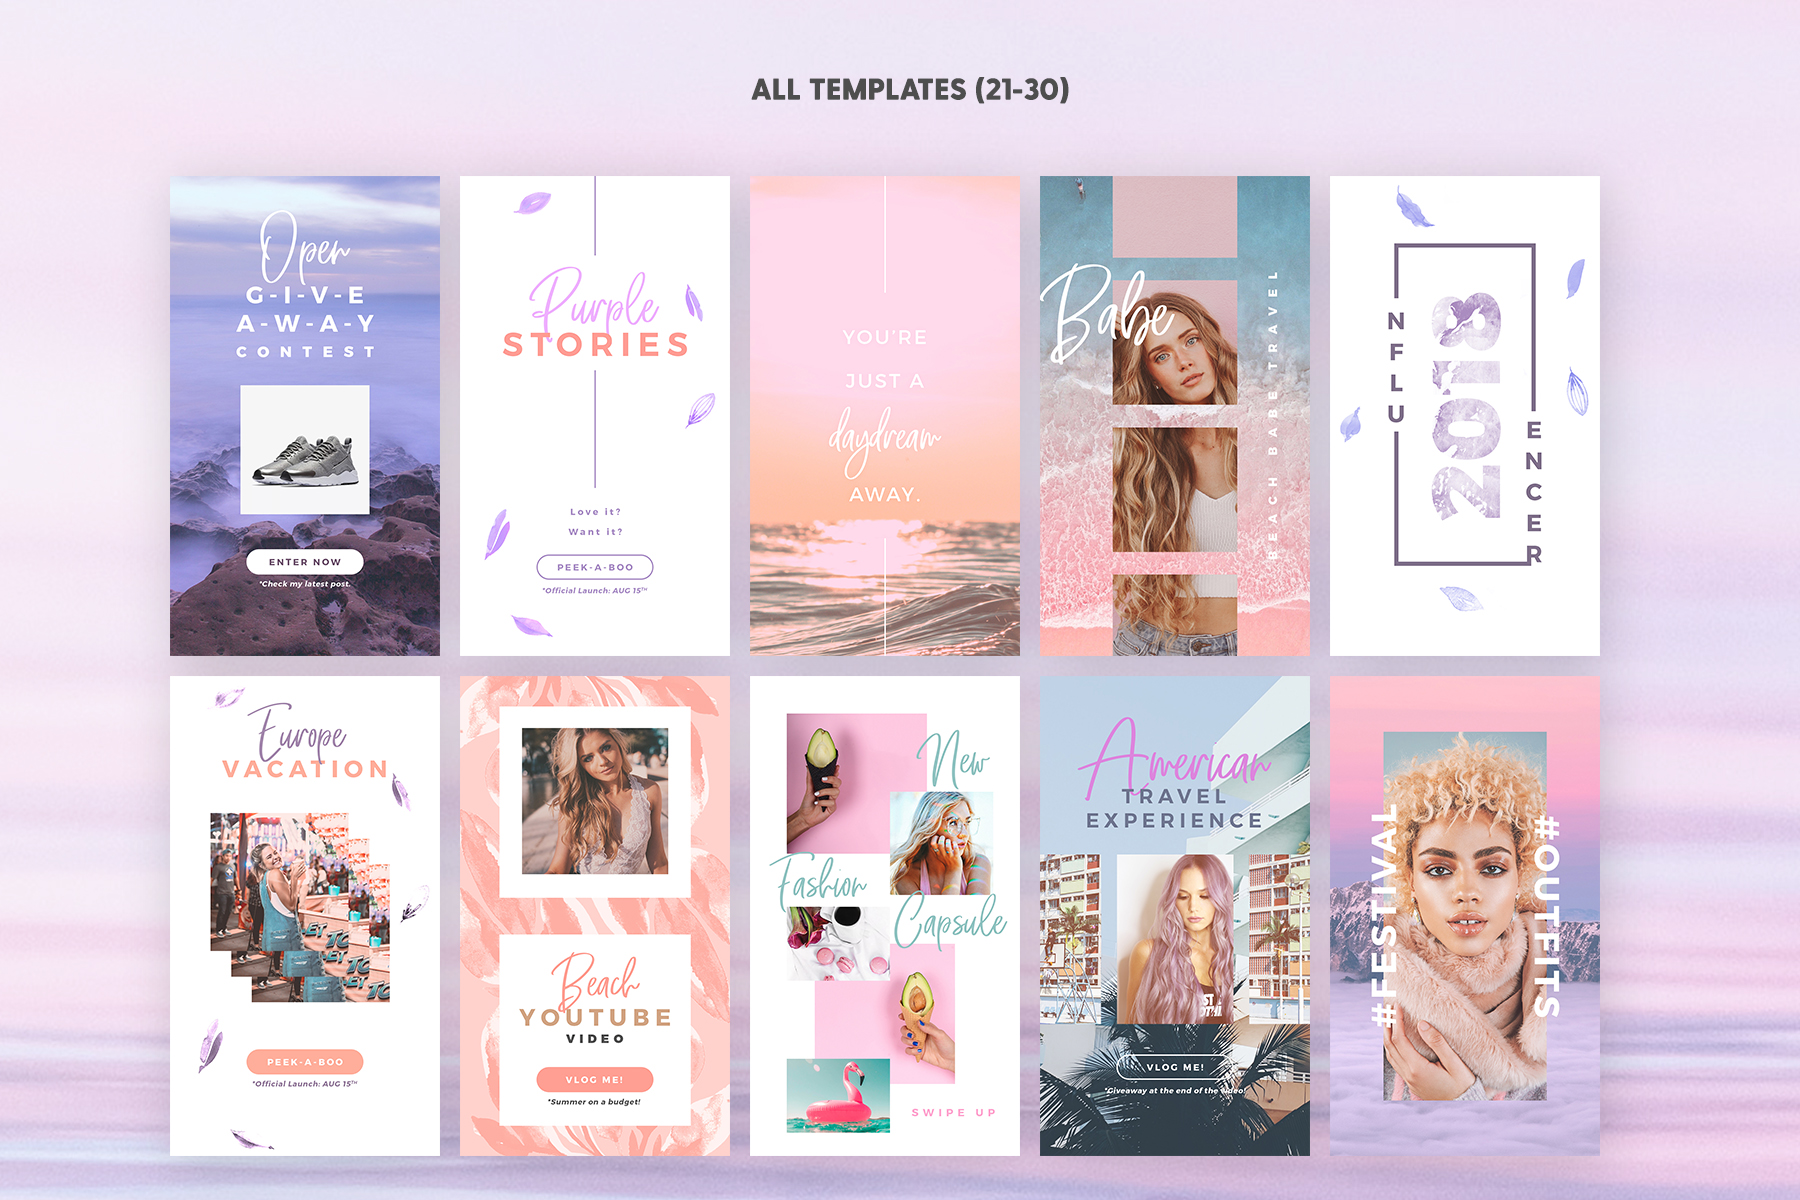 Instagram Stories - Dreamy Vibes Ed. Graphic Web Elements By lavie1blonde - Image 5